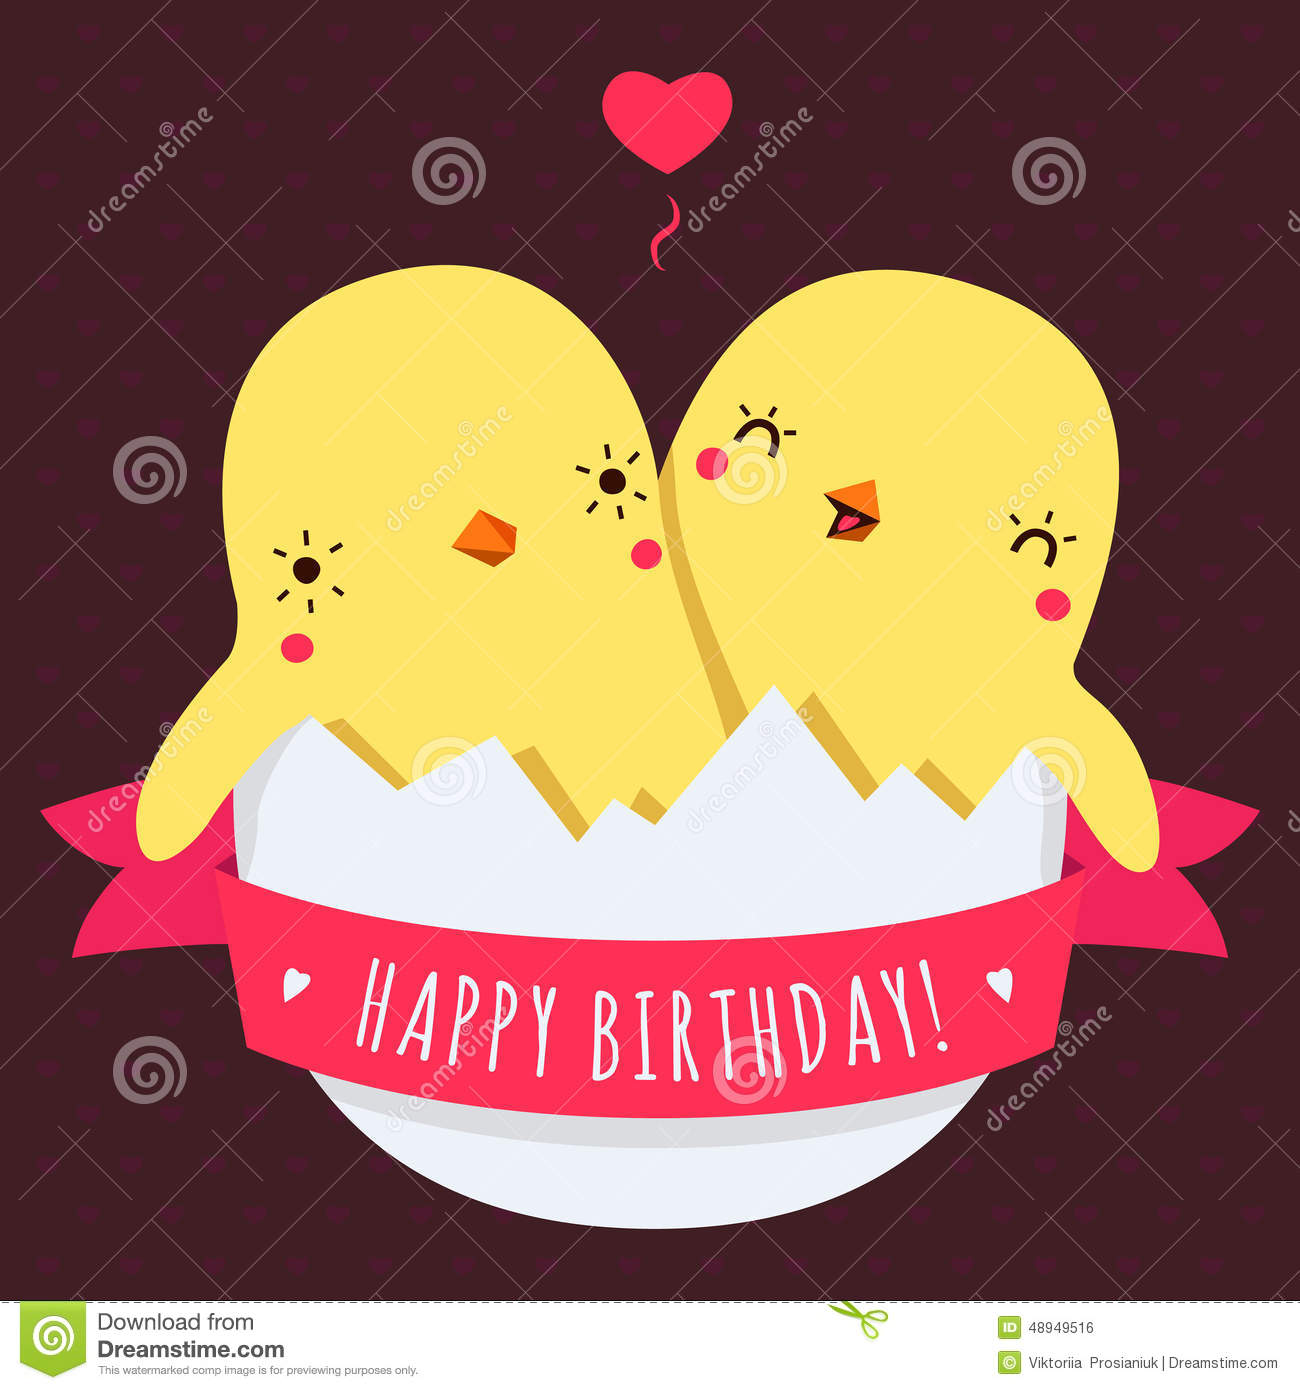 Birthday cards for twins happy birthday cards for twins kristyandbryce Gallery